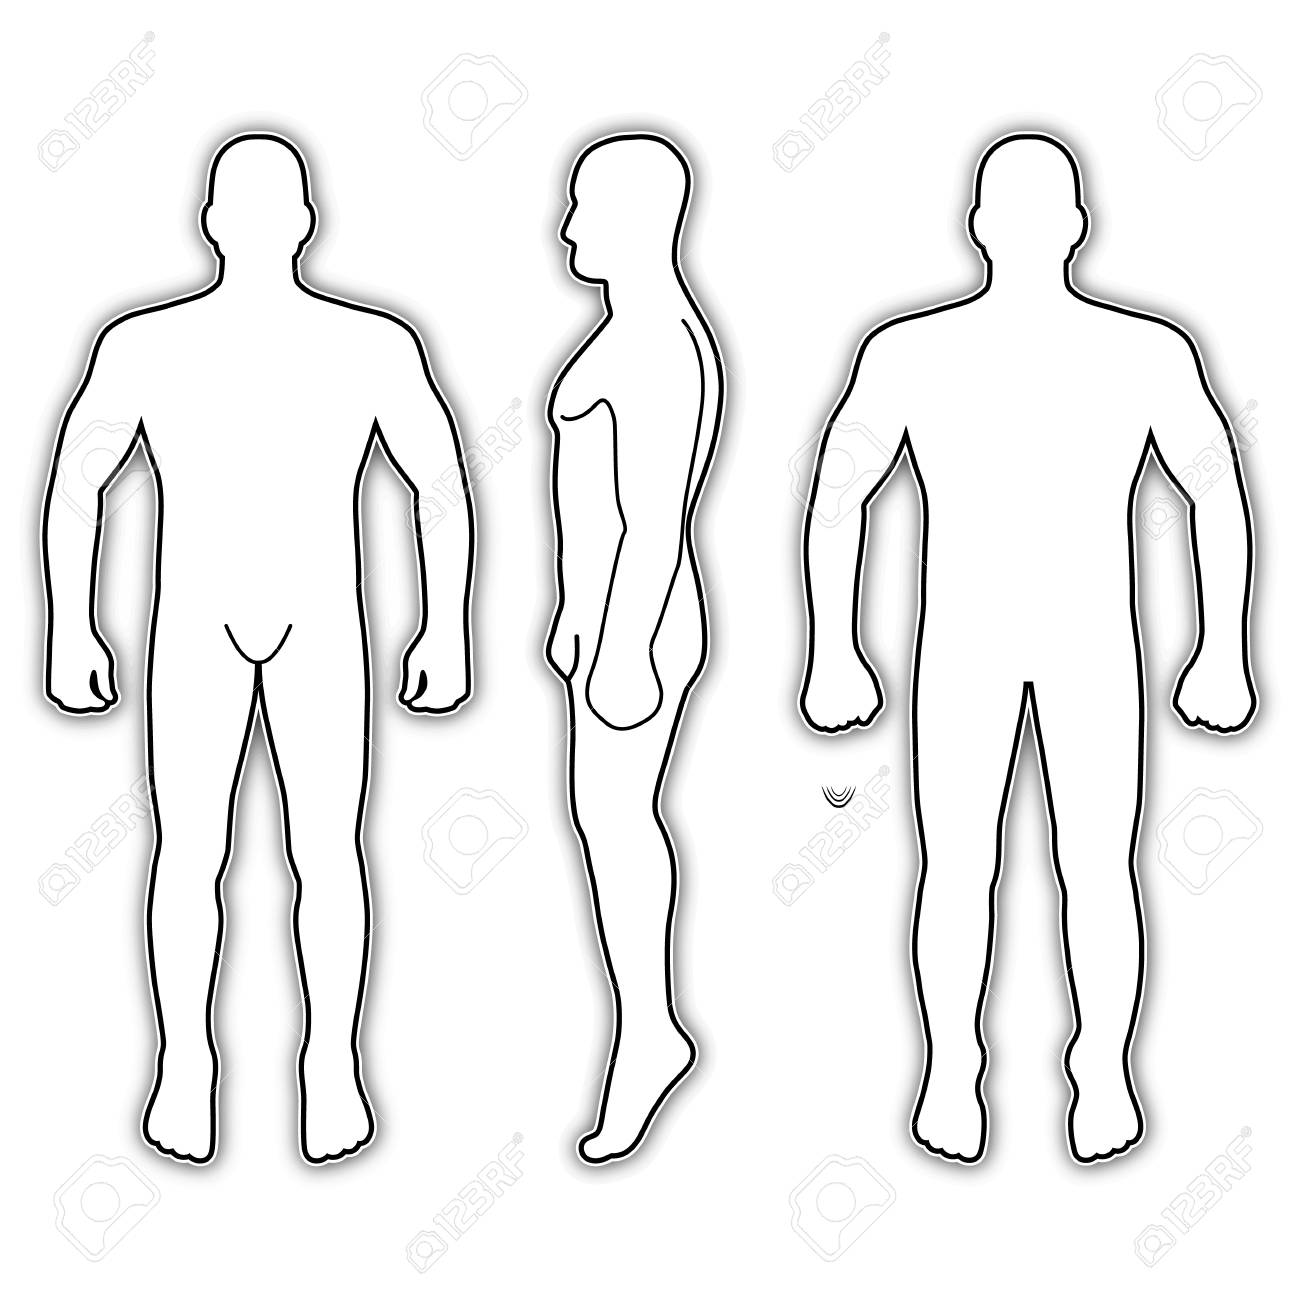 Fashion Man Body Full Length Bald Template Figure Silhouette Front Back And Side Views